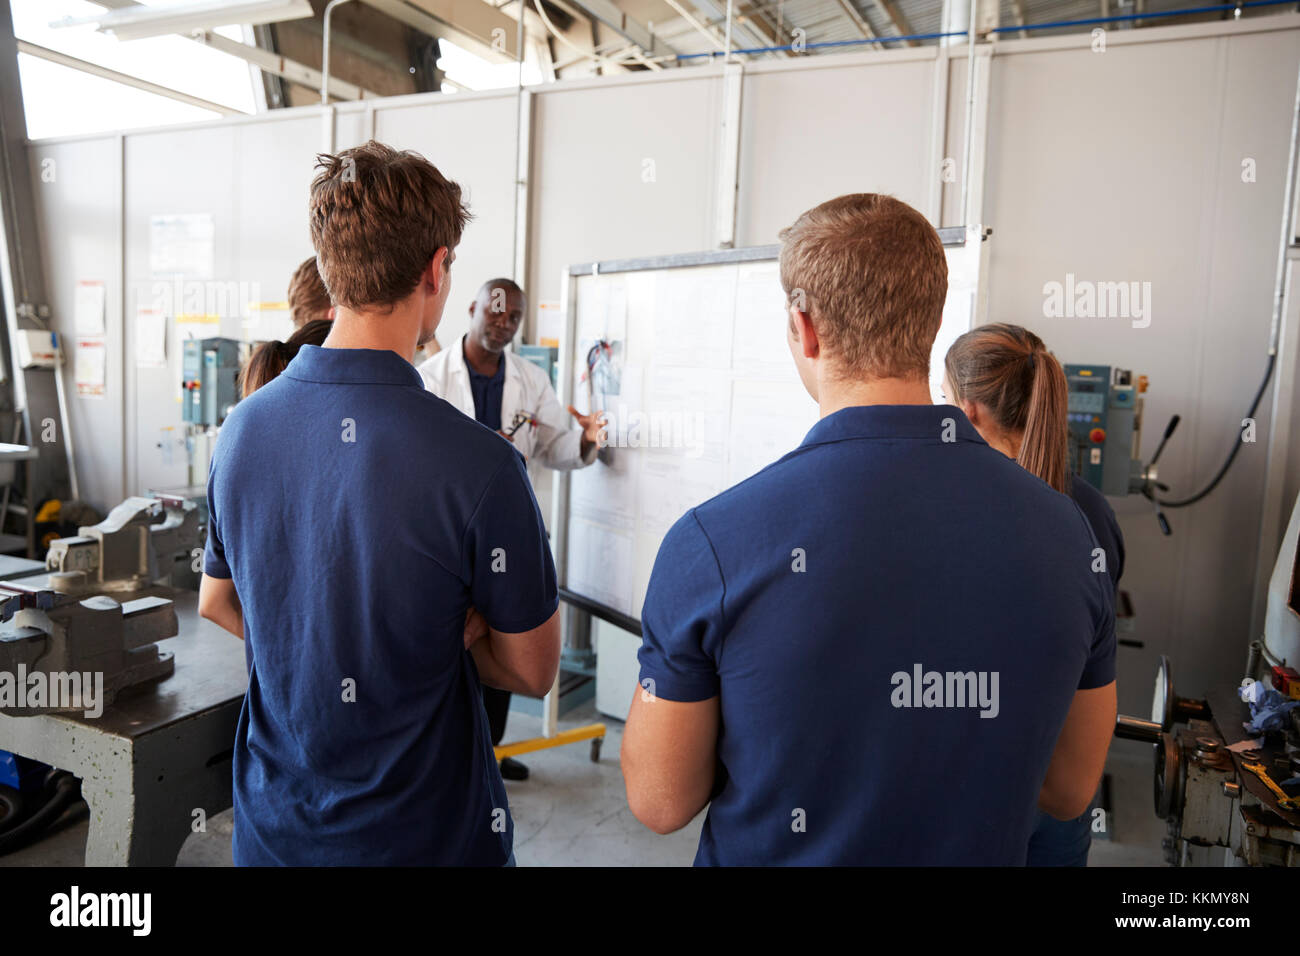 Engineering apprentices at a training presentation, back view - Stock Image